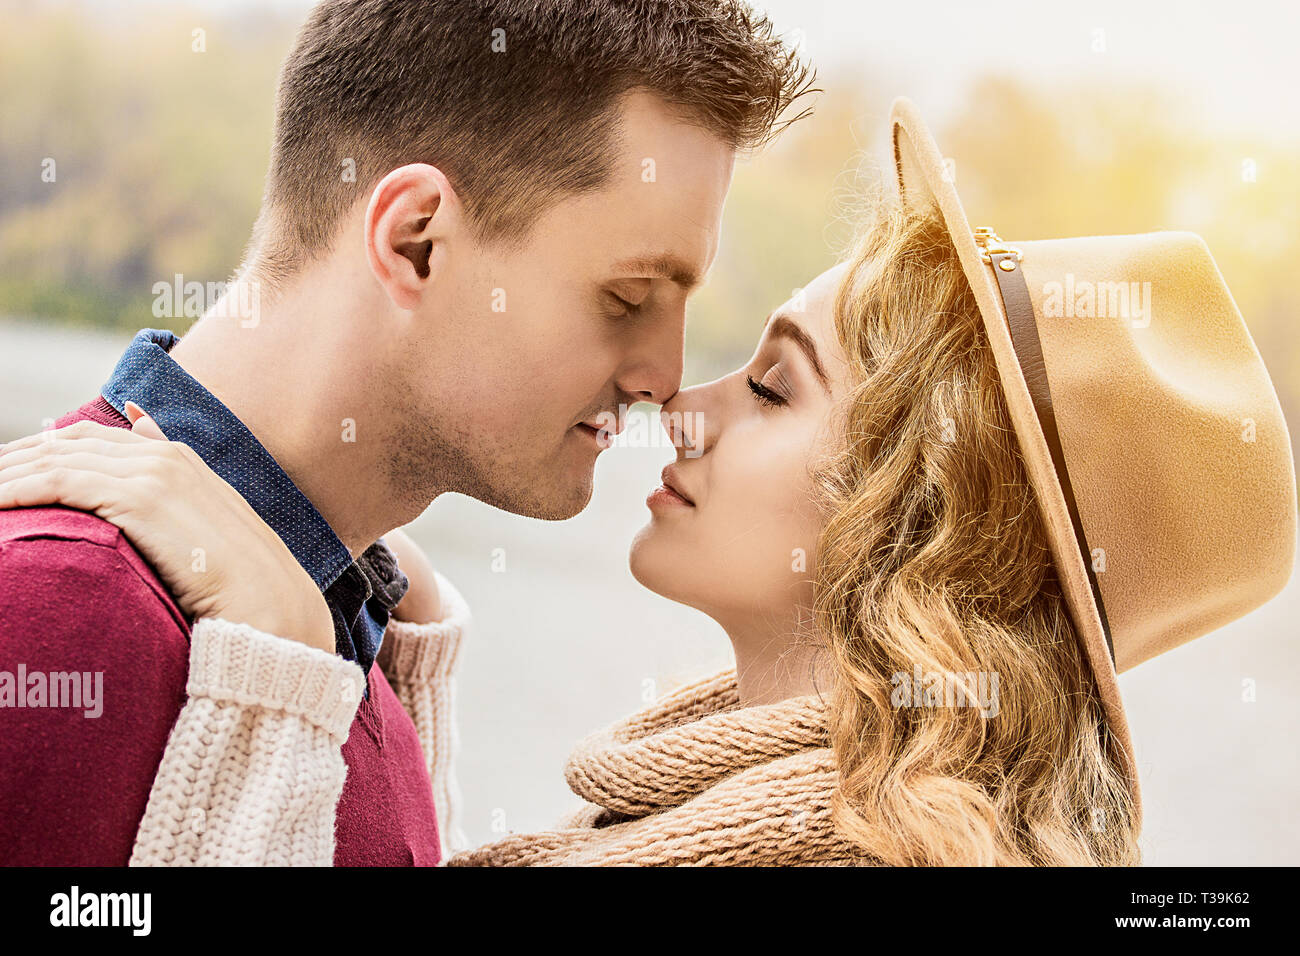 Totally in love. Cropped image of young beautiful couple keeping eyes closed while standing close face to face. Young couple in love walking outdoors. Stock Photo